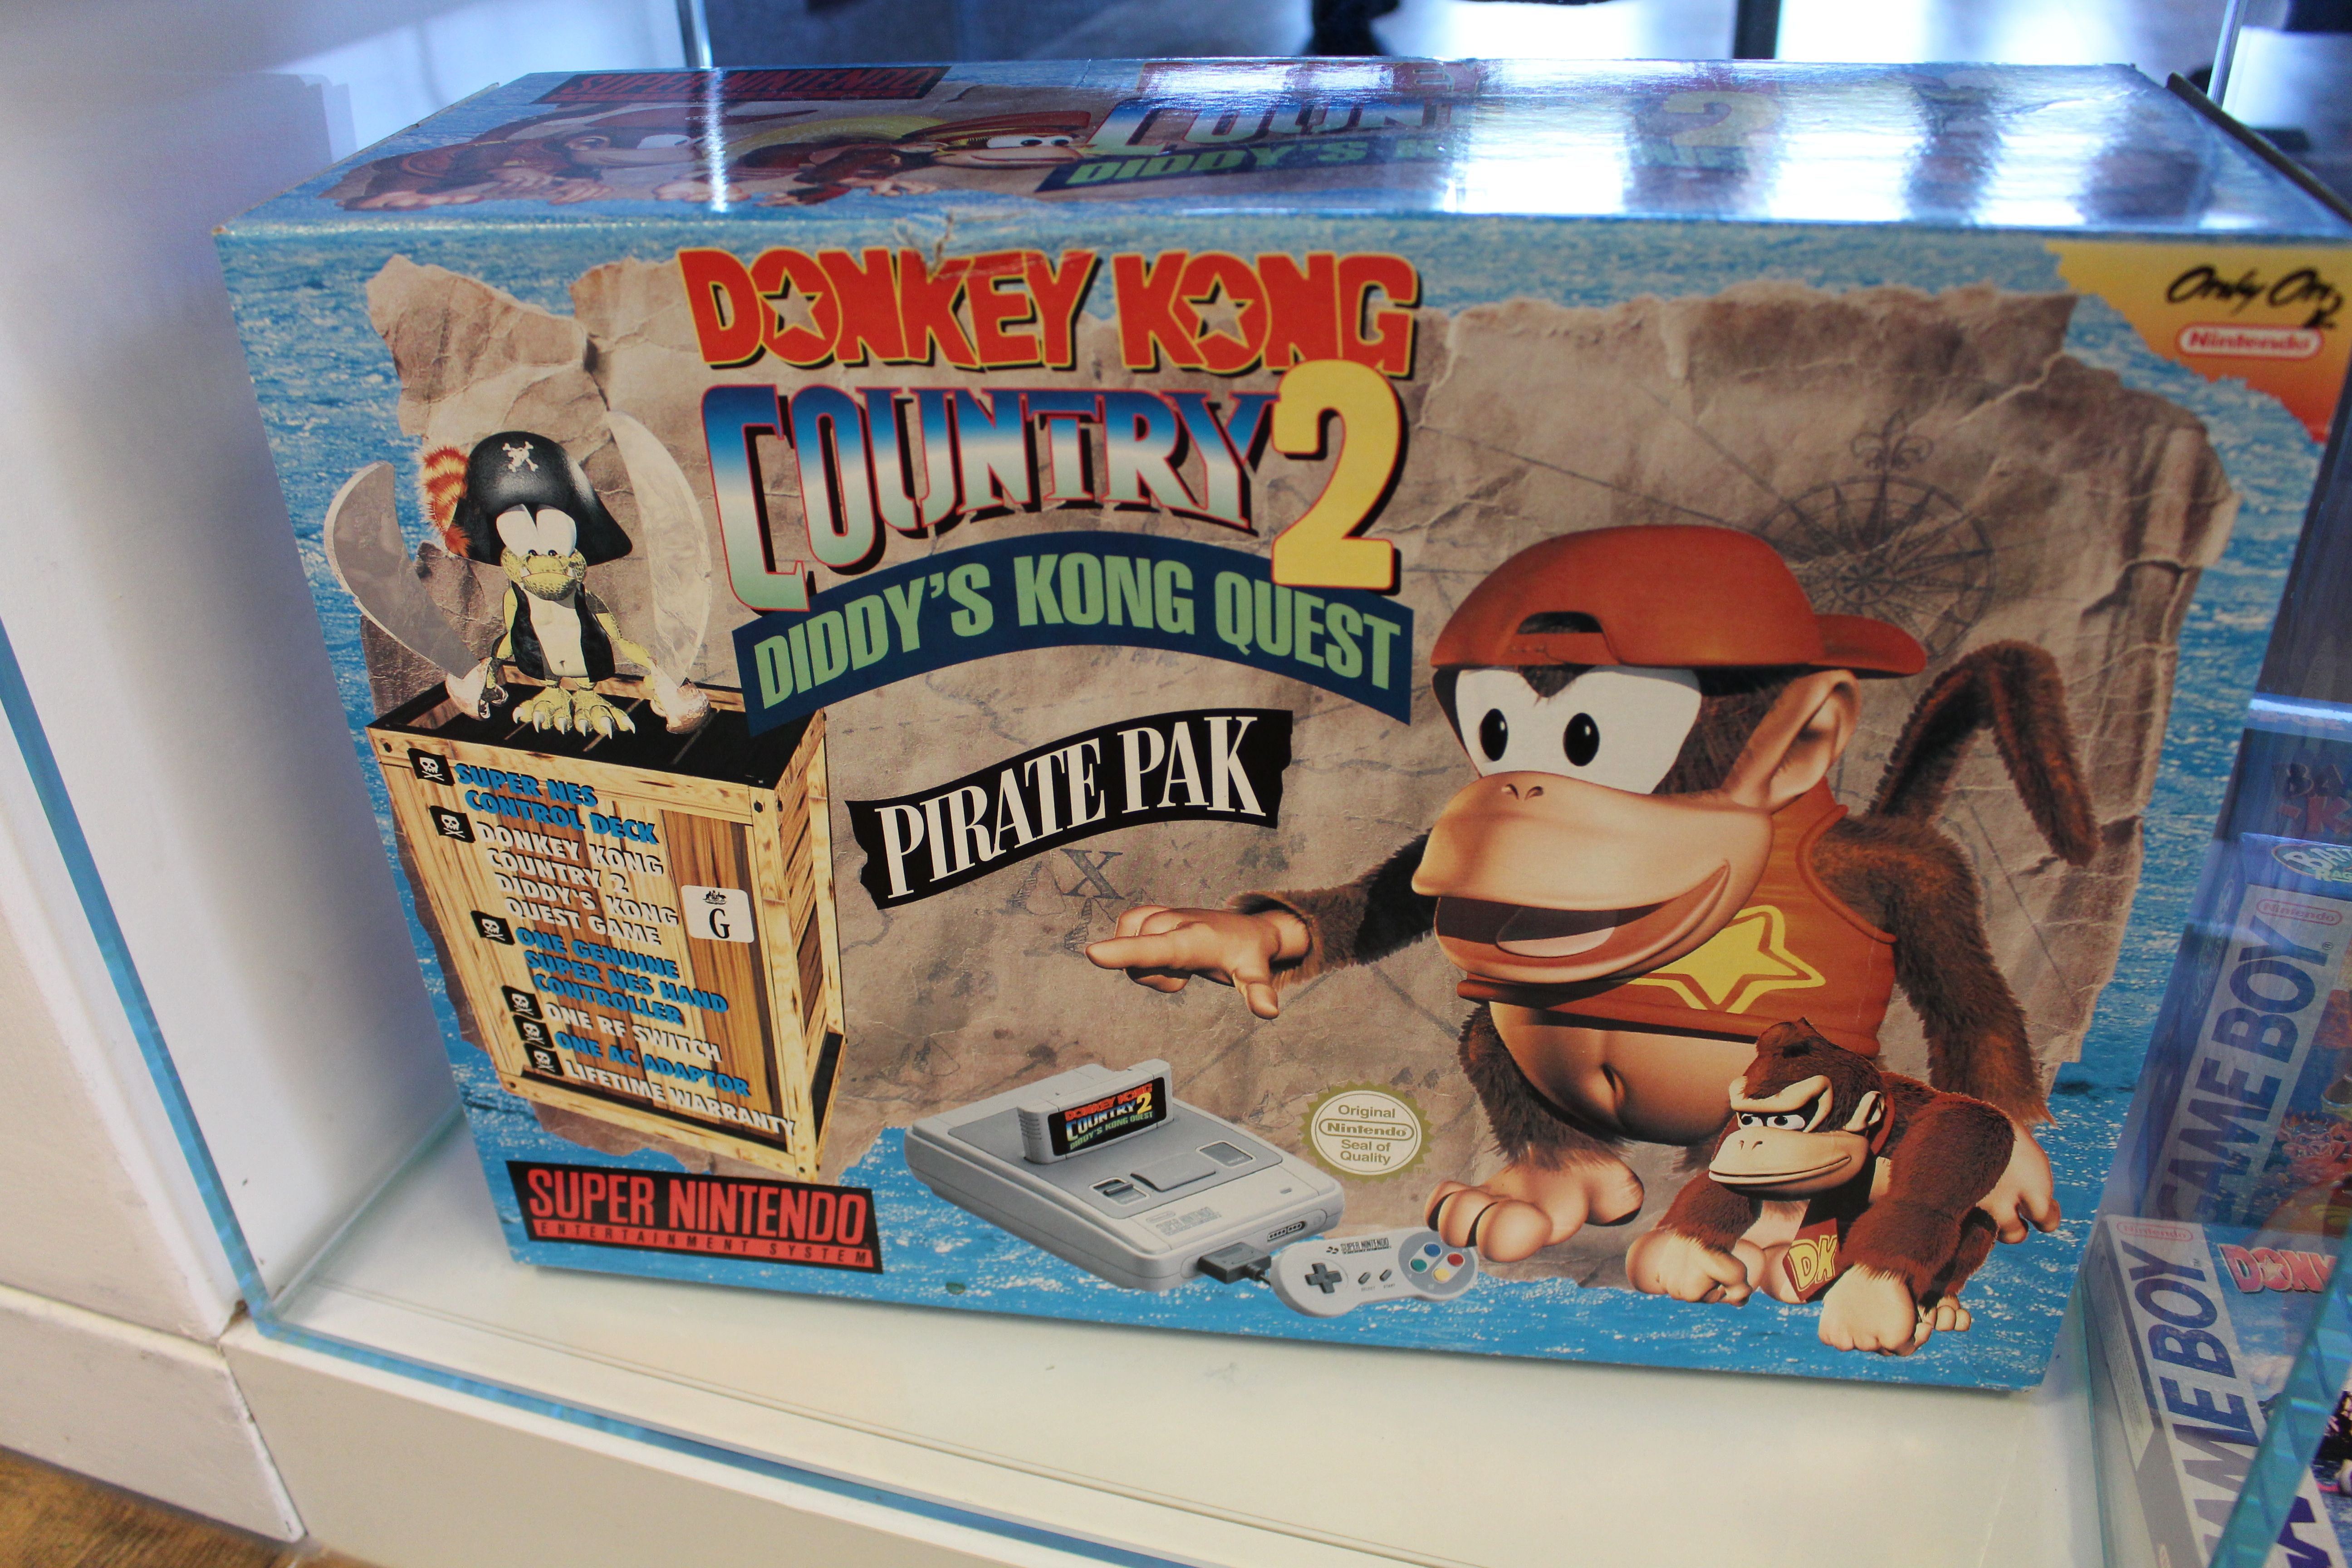 Donkey Kong Country 2 Pirate Pak in the Rare canteen